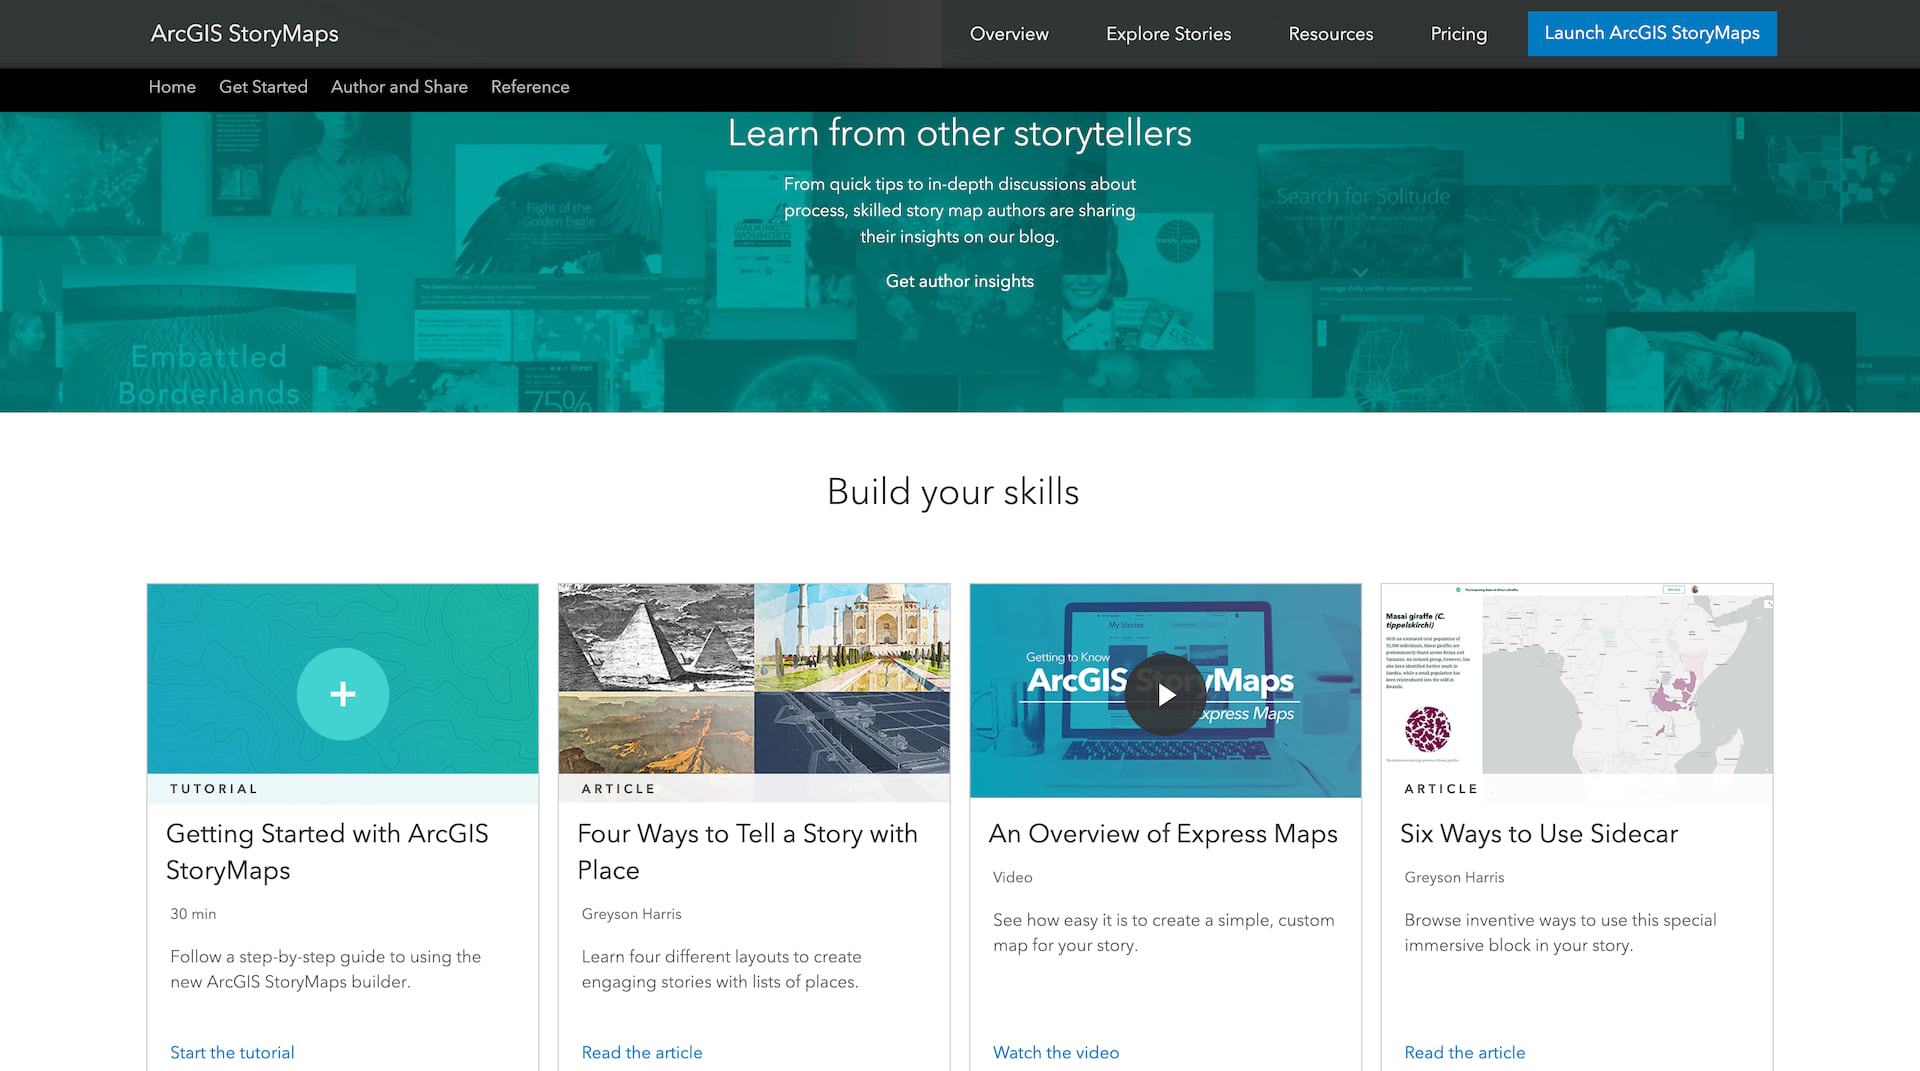 A screenshot of the ArcGIS StoryMaps website showing several resources for becoming a better storyteller